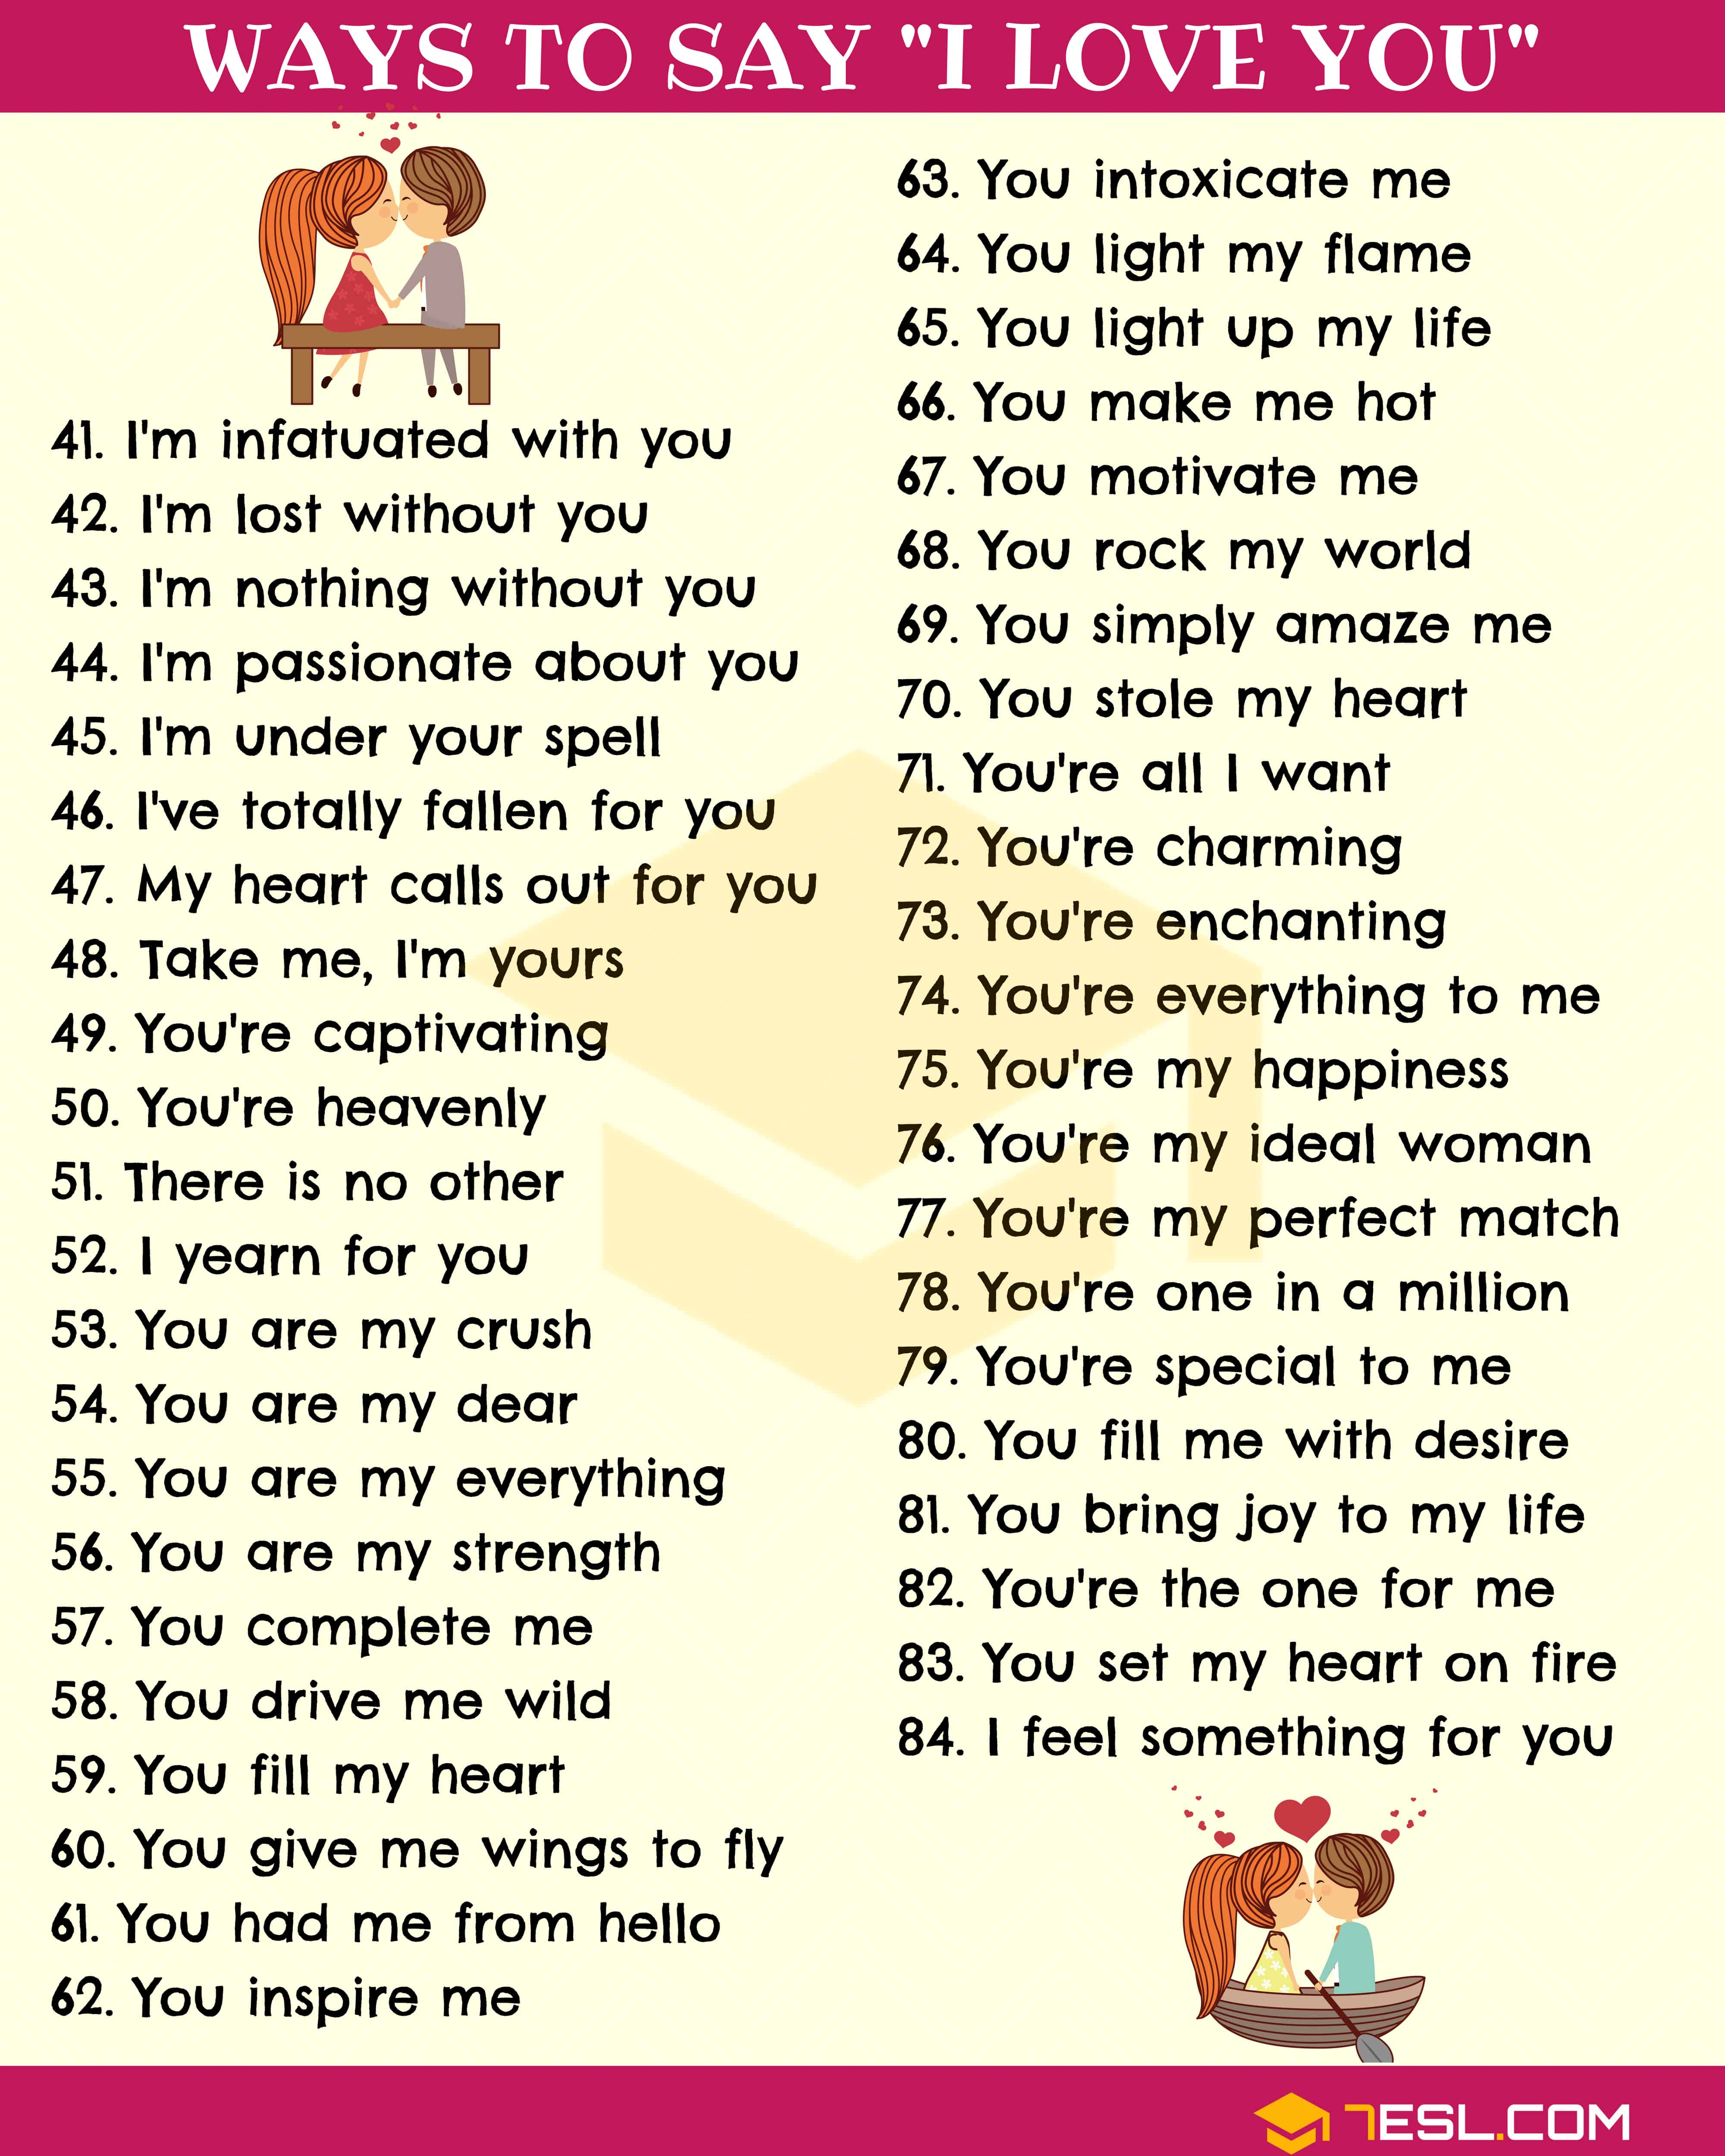 Love Messages: 123 Cute Ways To Say I LOVE YOU 3